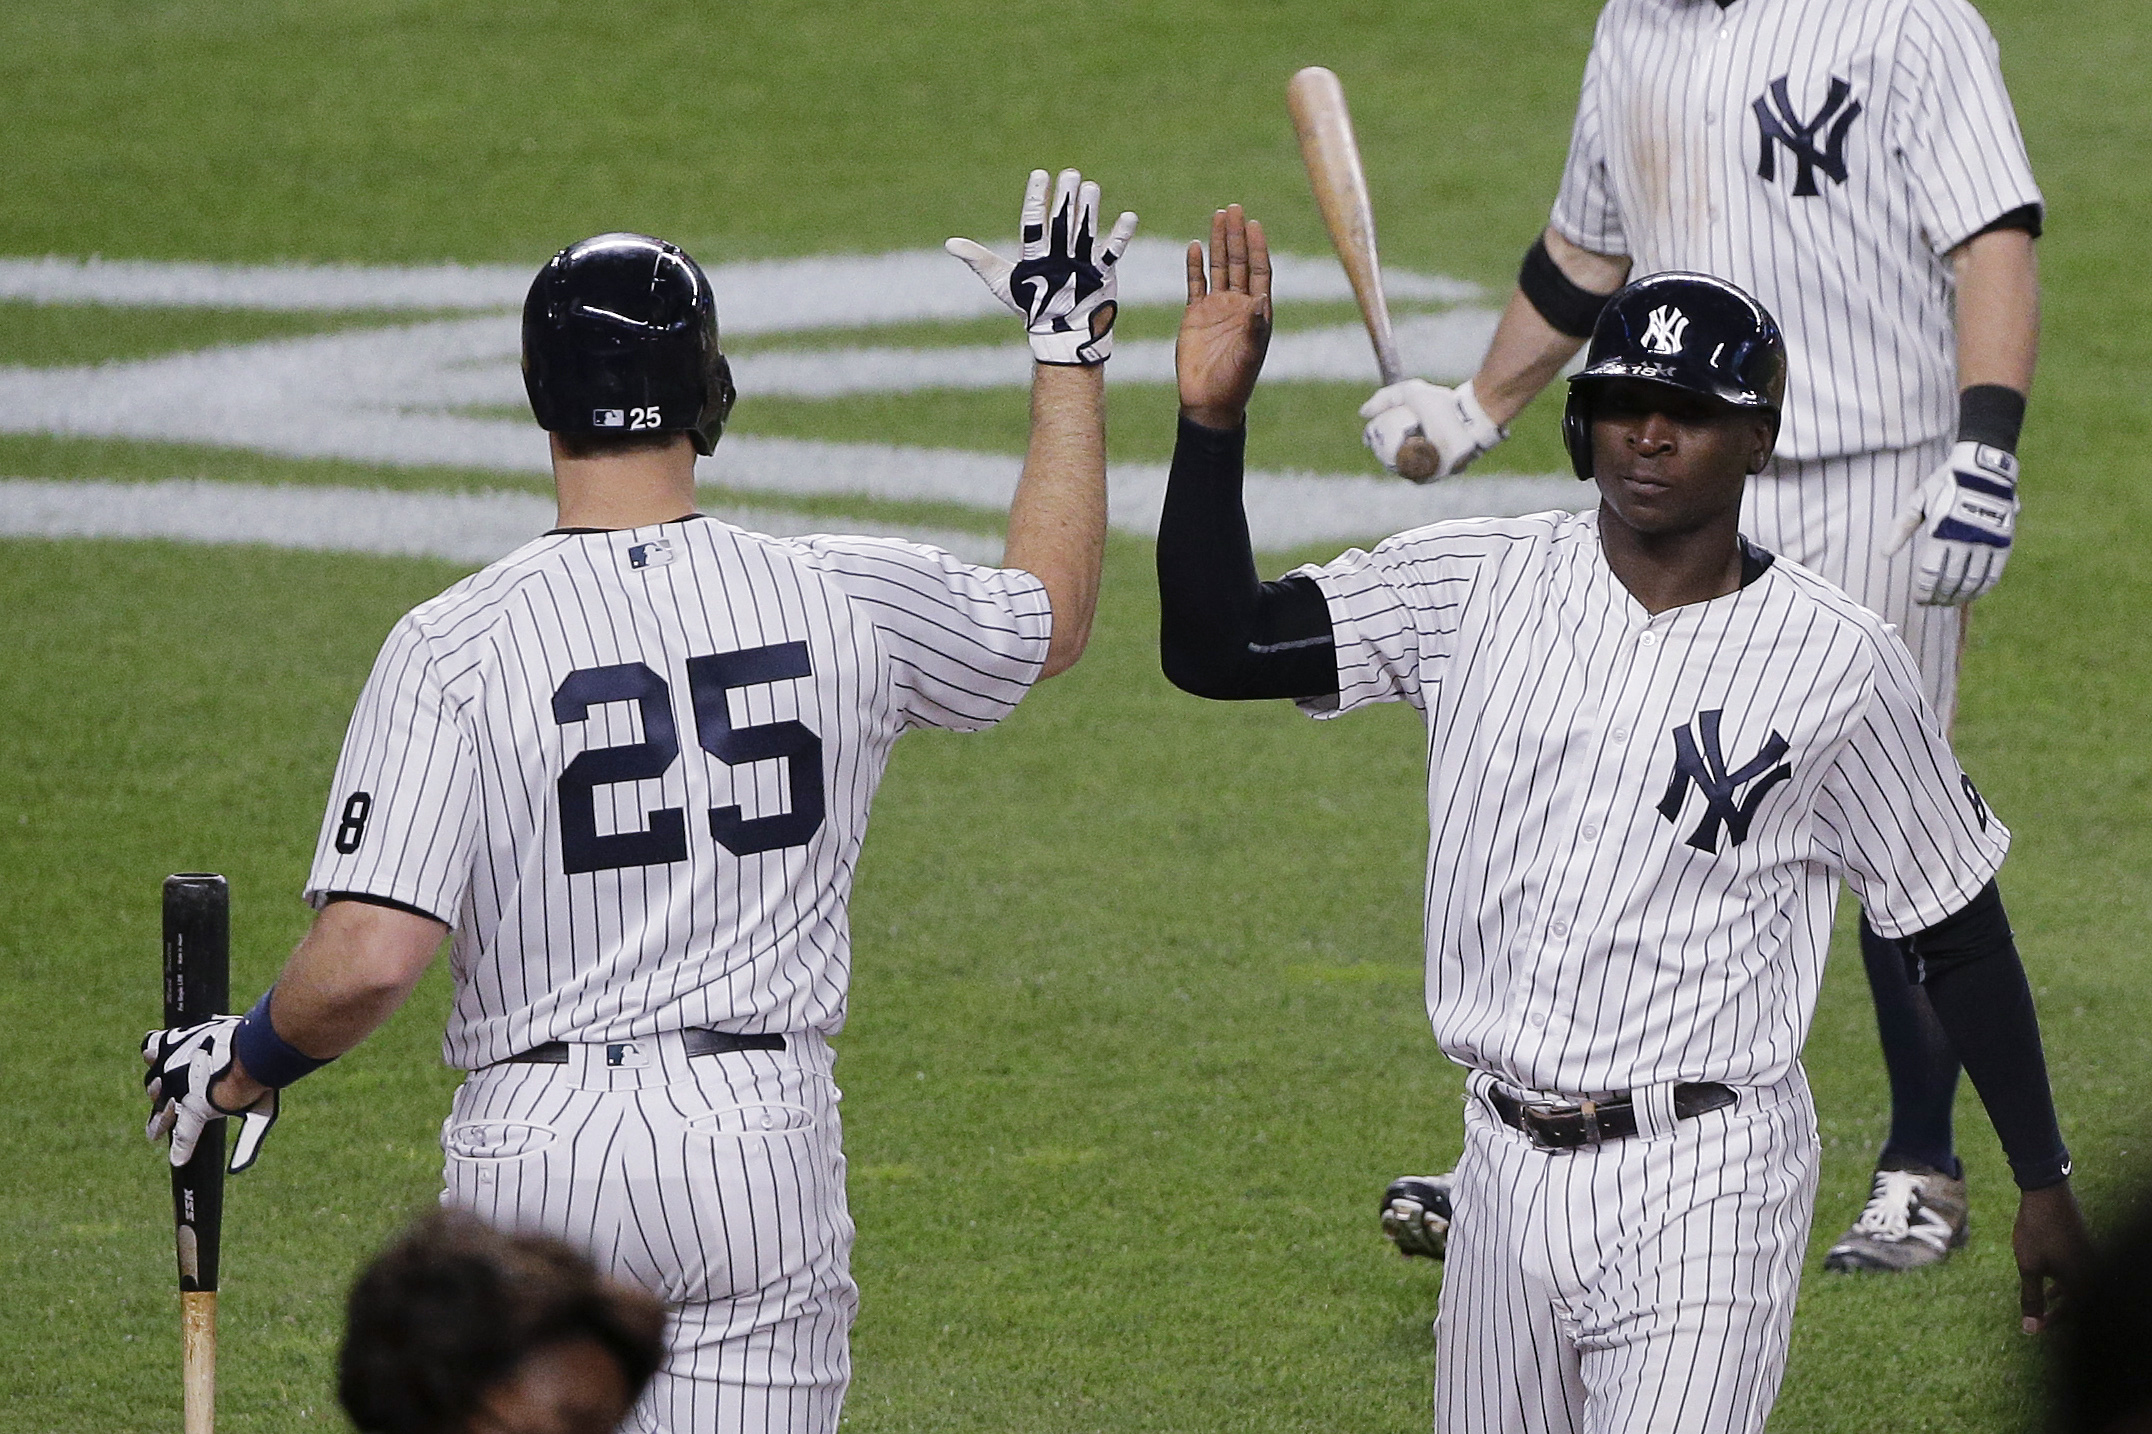 New York Yankees' Didi Gregorius, right, is greeted by Mark Teixeira (25) after scoring on an infield hit by Jacoby Ellsbury against the Toronto Blue Jays during the seventh inning of a baseball game, Tuesday, May 24, 2016, in New York. (AP Photo/Julie Ja